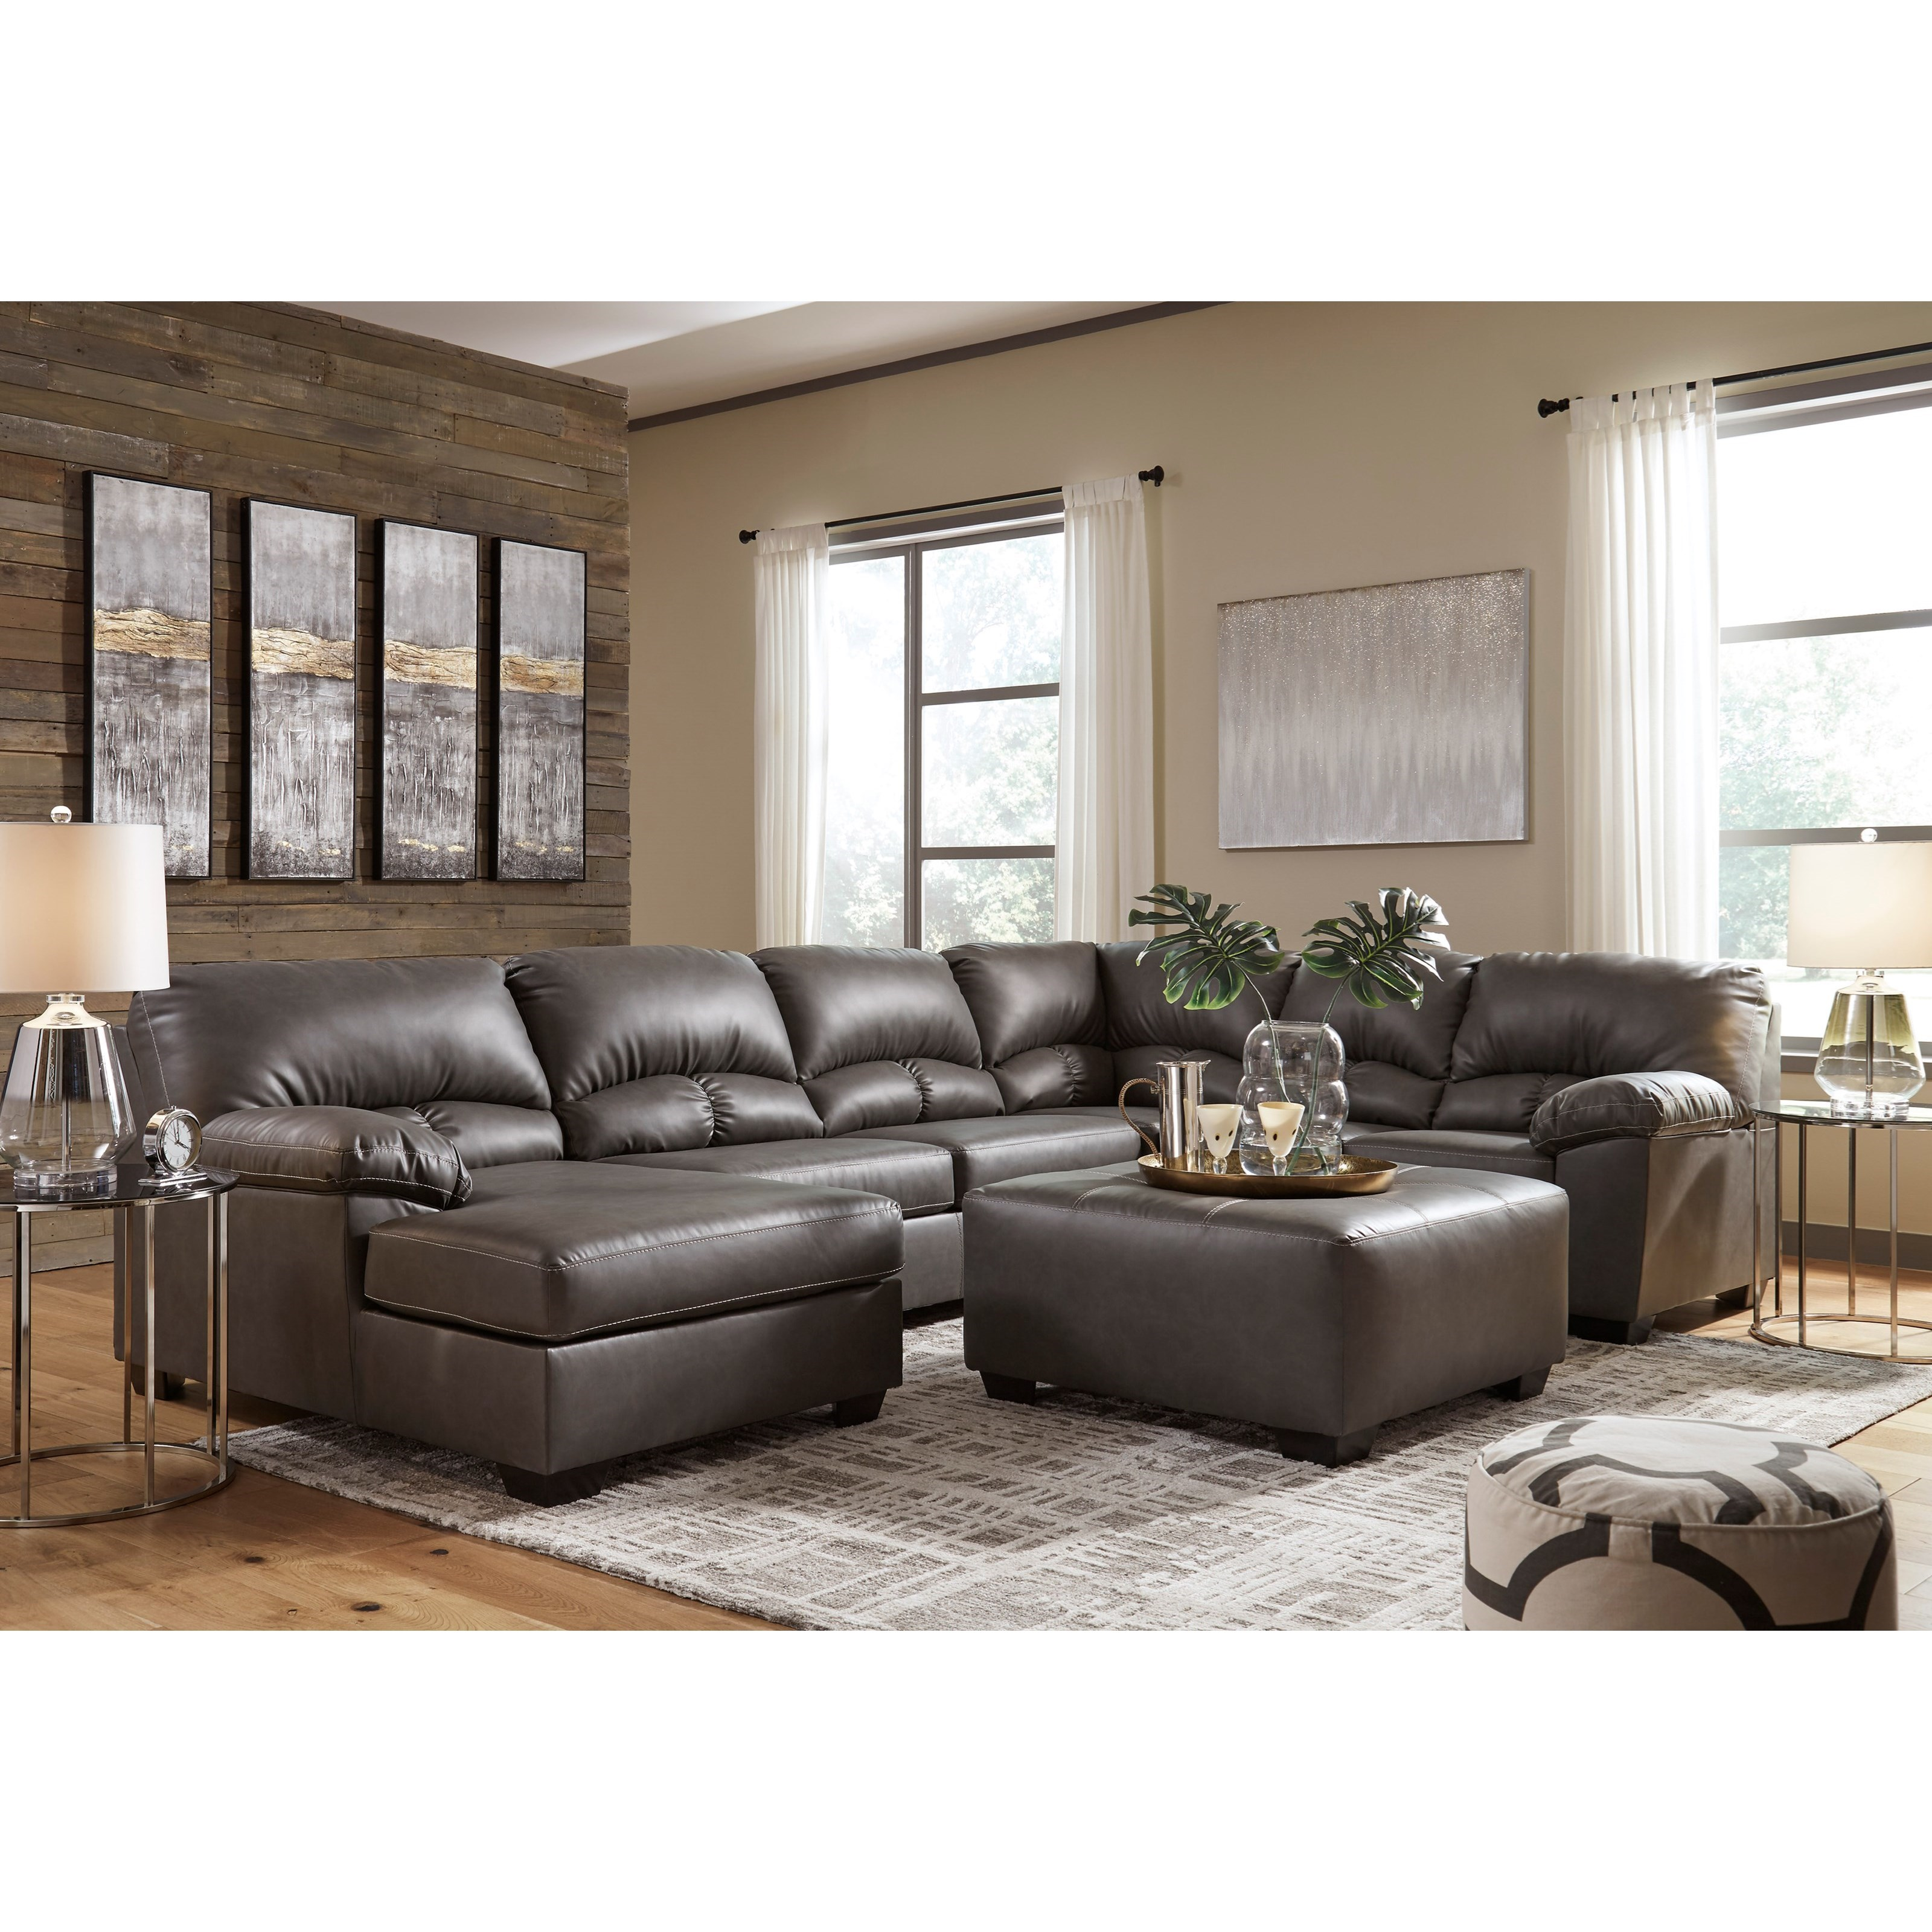 Aberton Living Room Group by Benchcraft by Ashley at A1 Furniture & Mattress